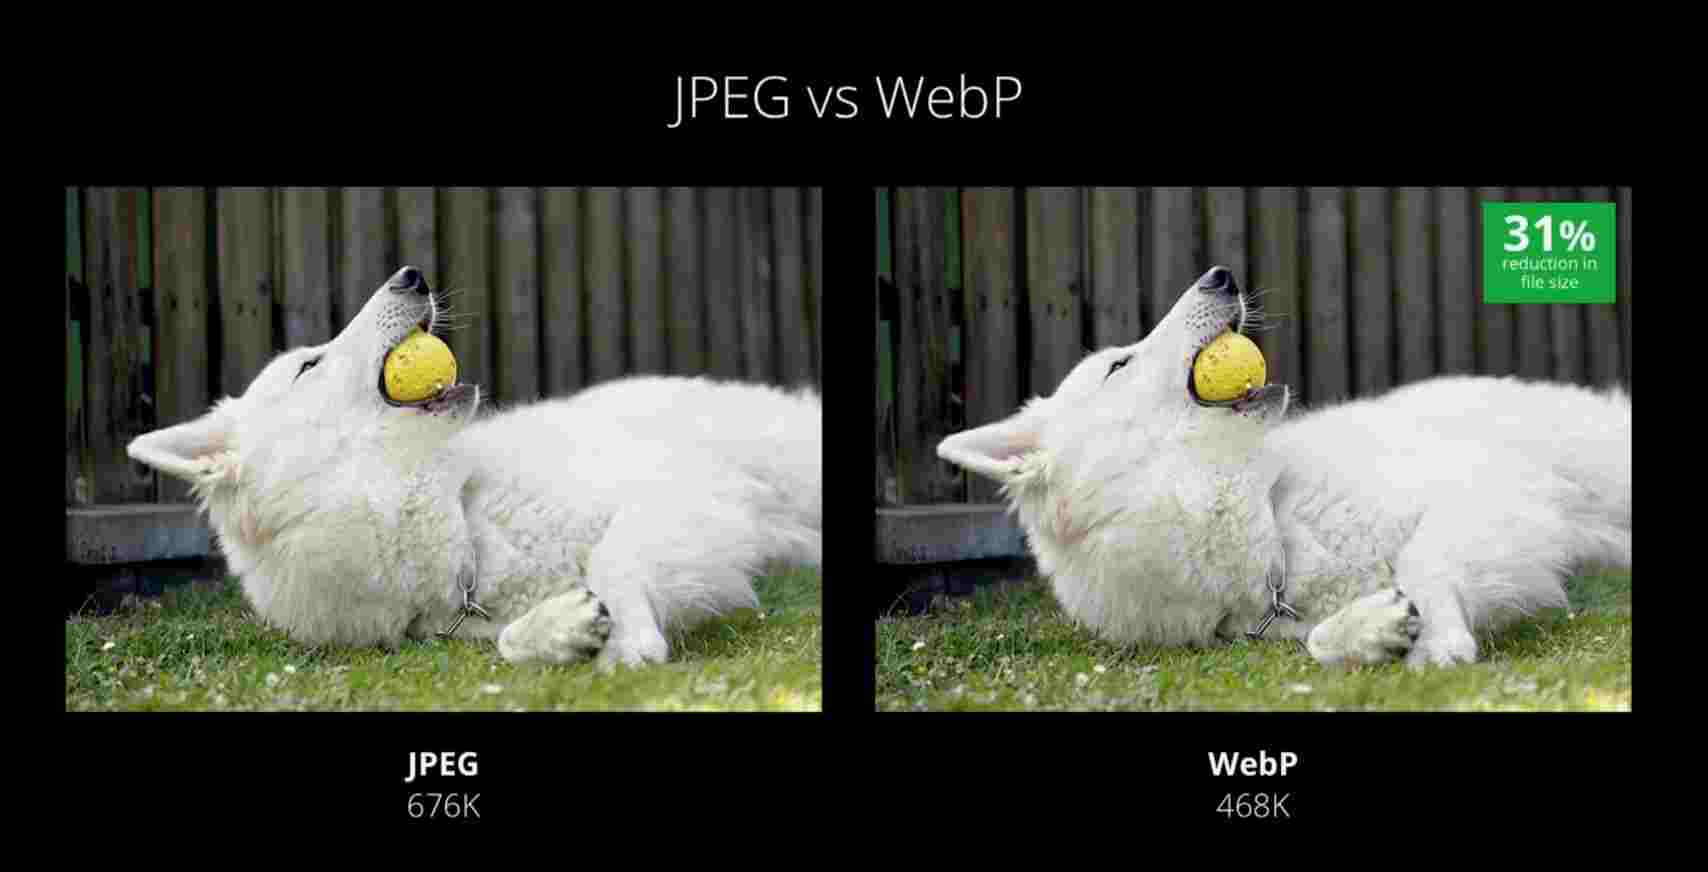 JPEG vs WebP